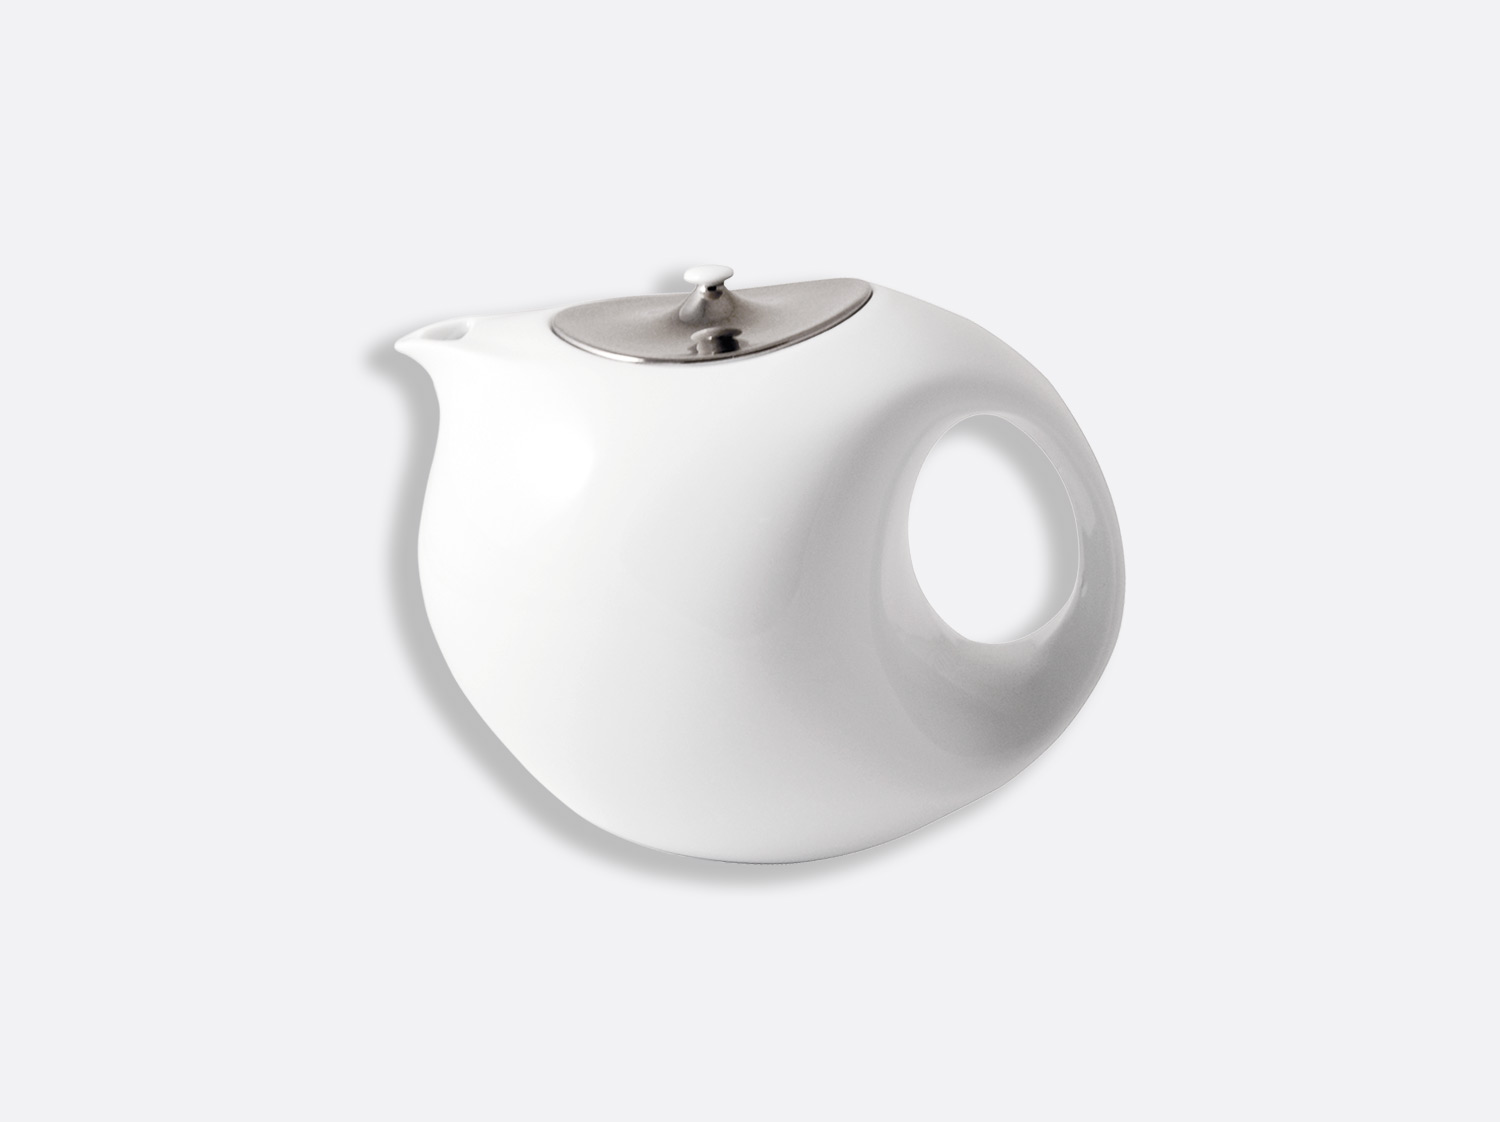 Théière platine 8 tasses 90 cl en porcelaine de la collection Bulle platine Bernardaud